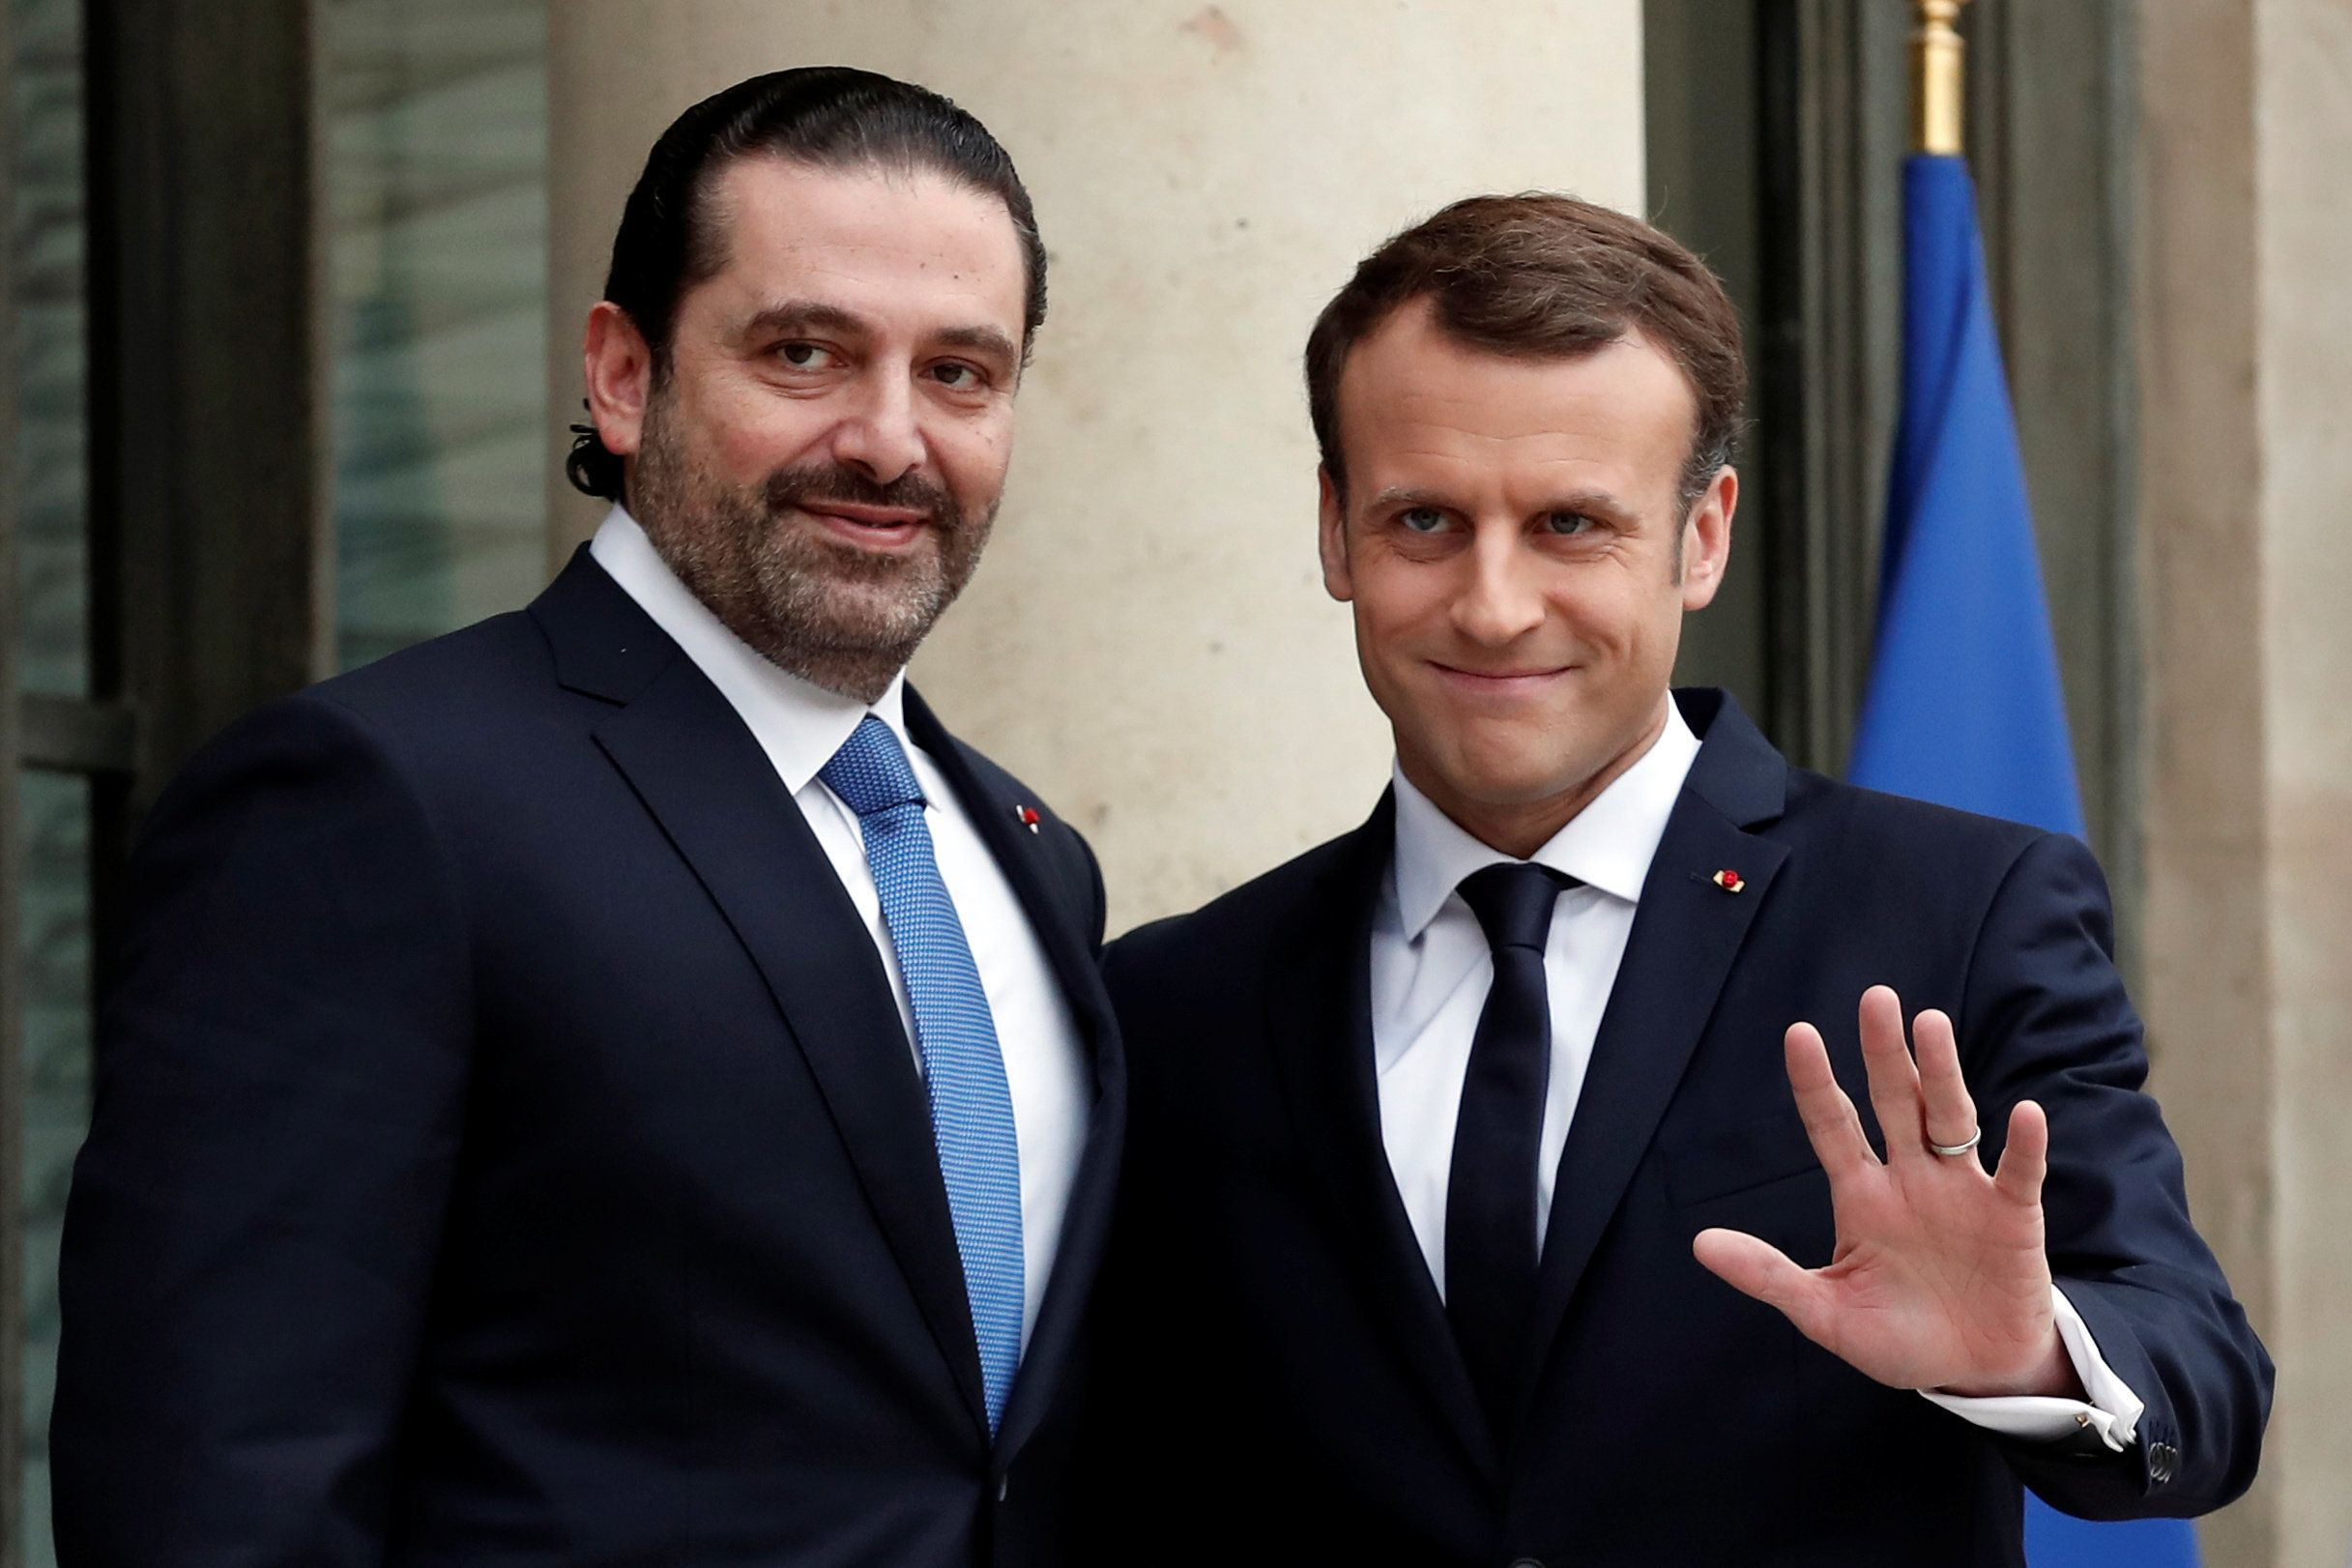 French President Emmanuel Macron and Saad al-Hariri, who announced his resignation as Lebanon's prime minister while on a visit to Saudi Arabia, react on the steps of the Elysee Palace in Paris, France, November 18, 2017. REUTERS/Benoit Tessier